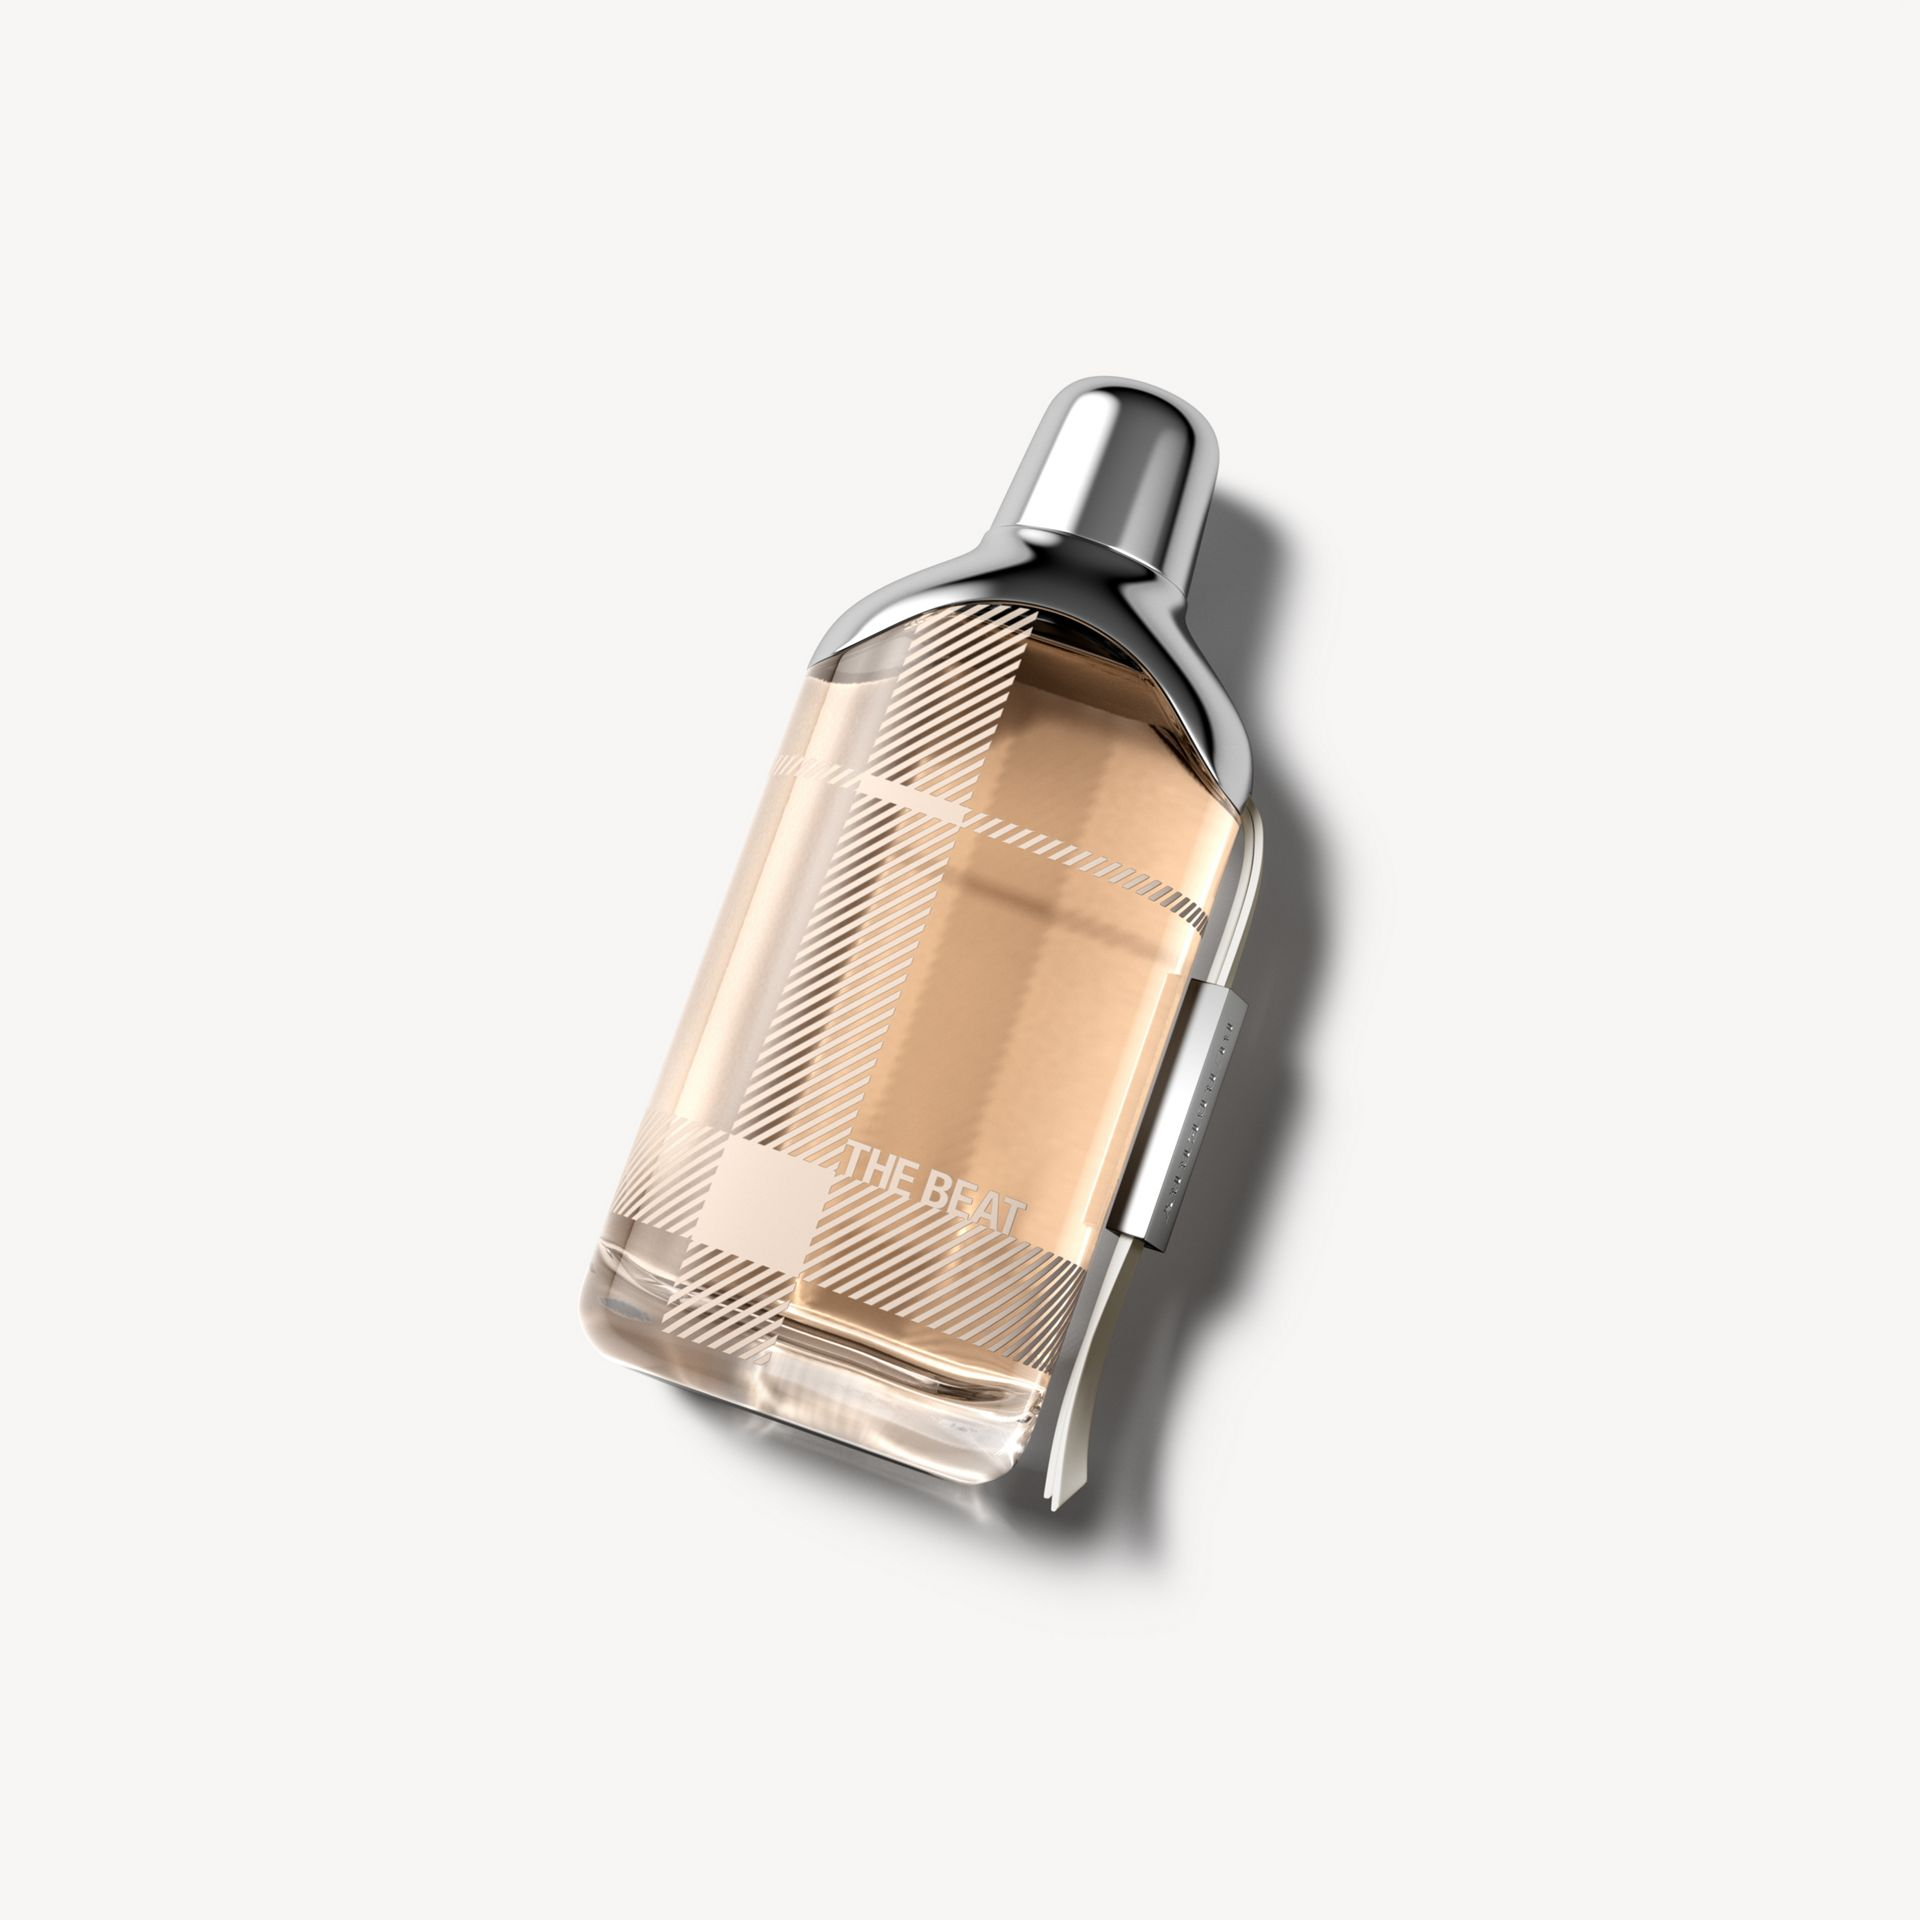 Burberry The Beat Eau de Parfum 75ml - Women | Burberry Hong Kong - gallery image 0